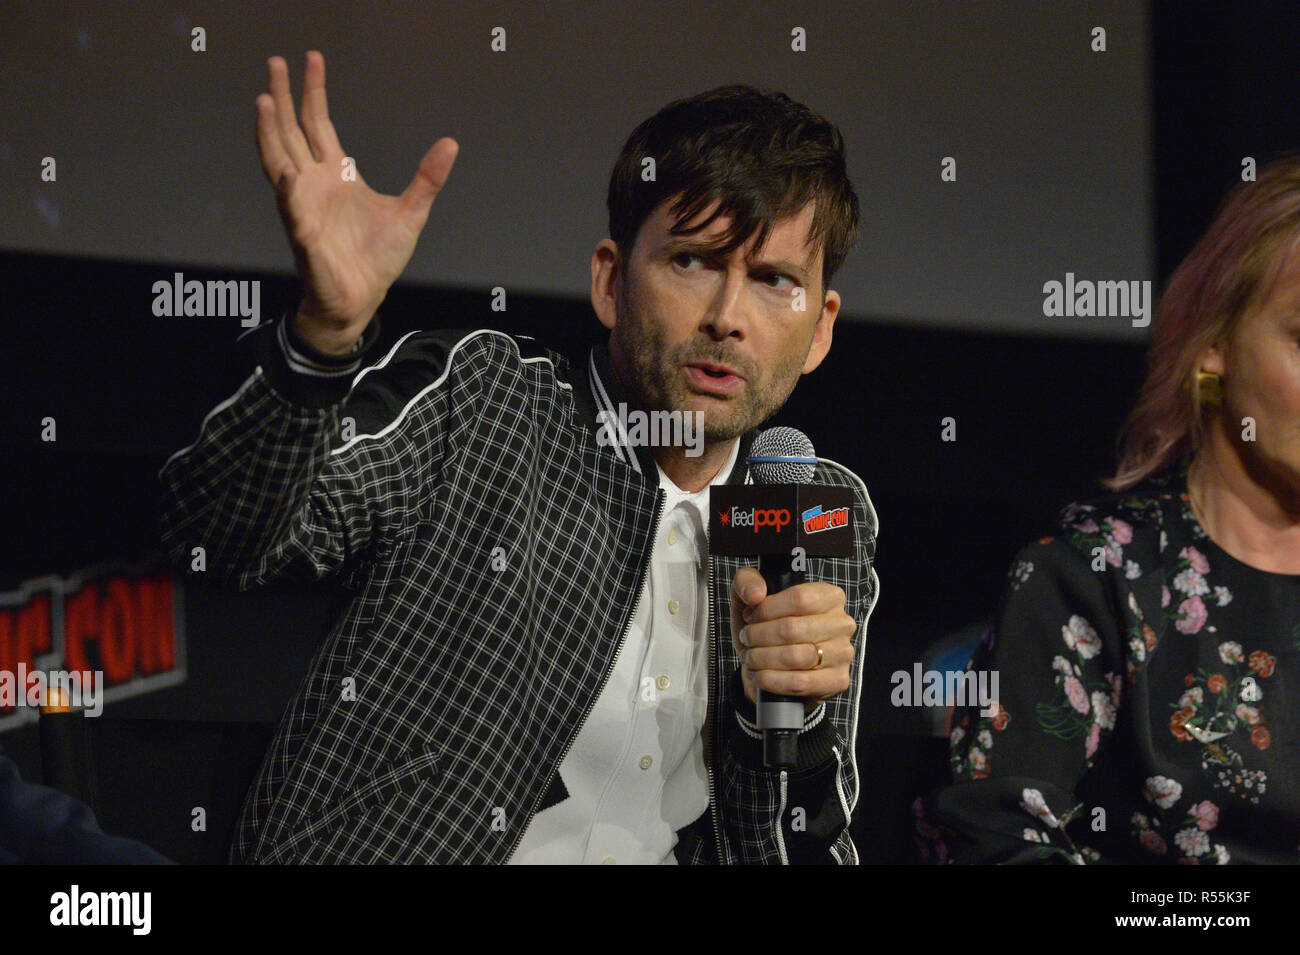 David Tennant attends the 'Good Omens' TV show panel at New York Comic Con on October 6, 2018 in New York City. - Stock Image